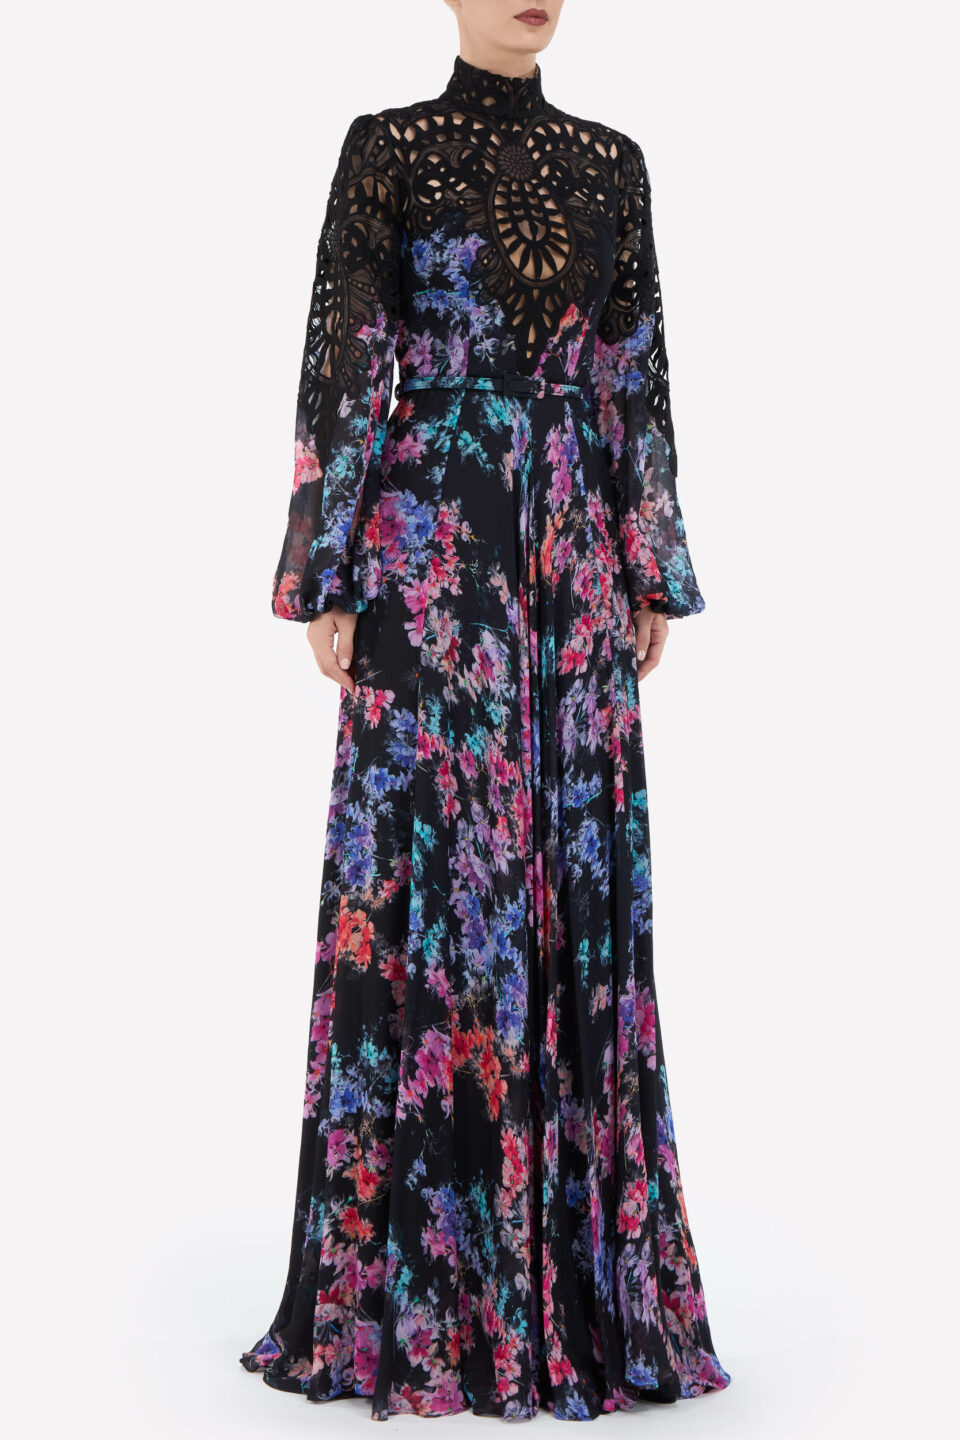 Isabella FW2121 Black Floral-Printed Chiffon Gown with Embroidered Lace Appliques & Coordinating Belt